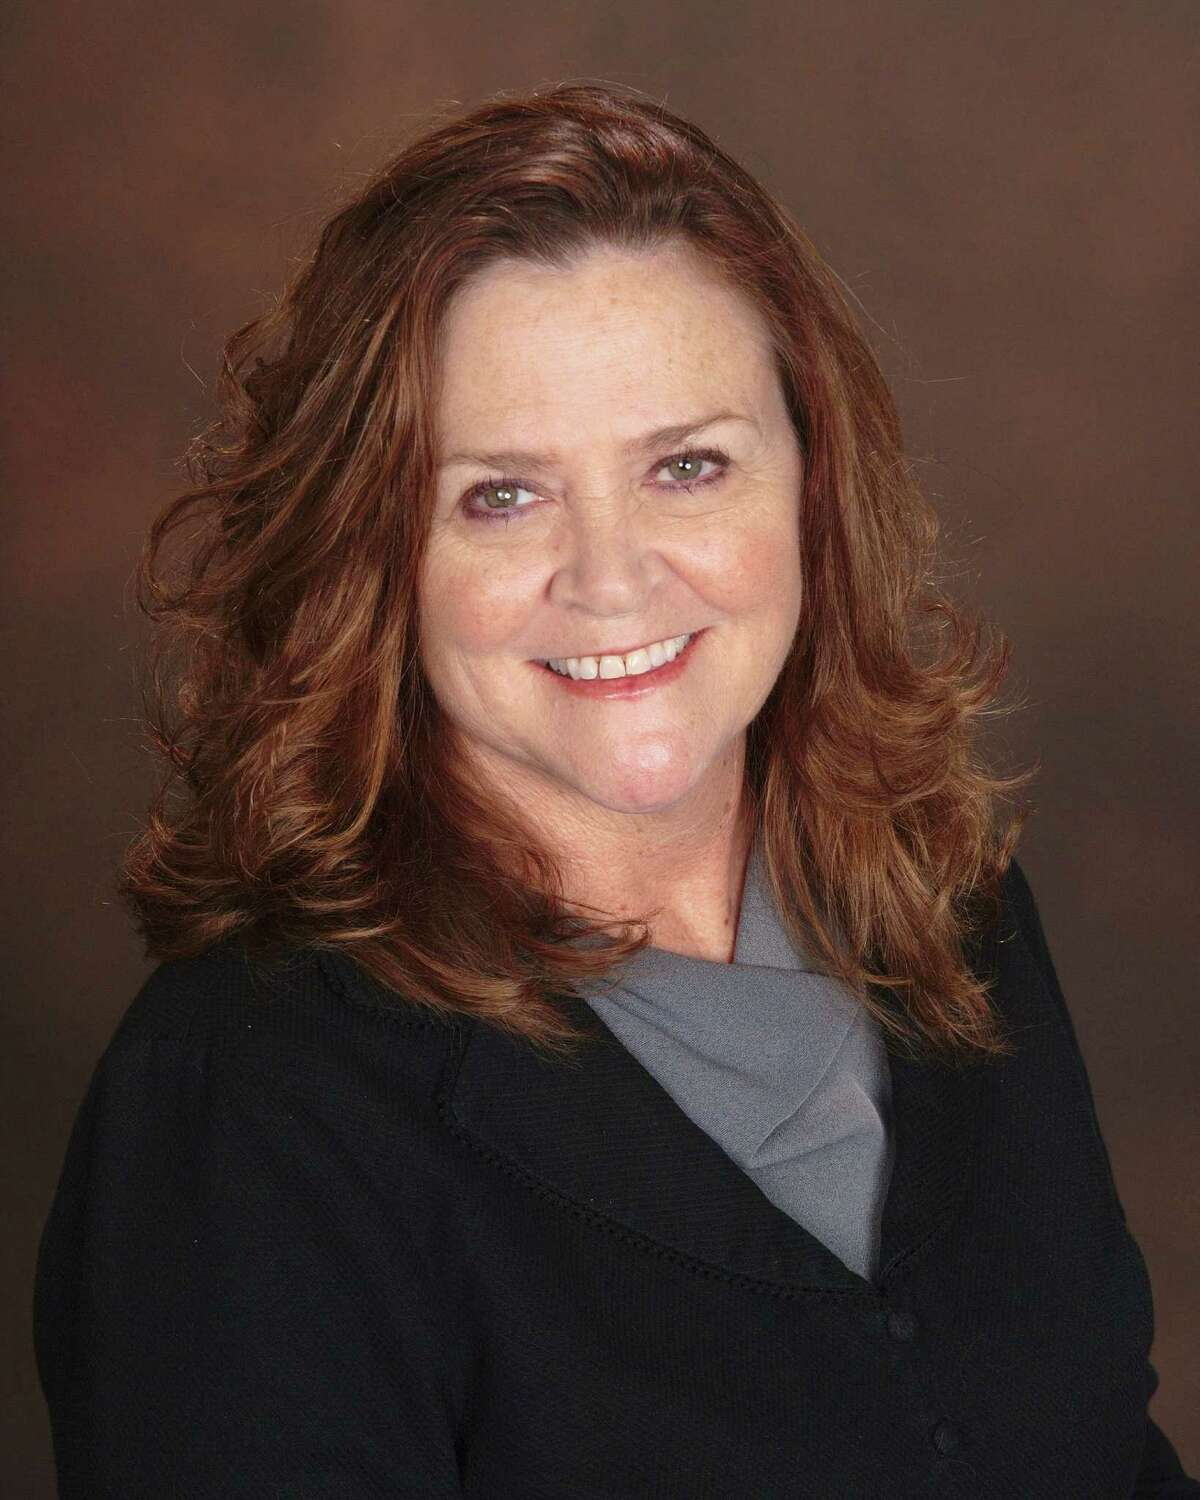 Cathy Bowen is running for Position 2 Kemah City Council/